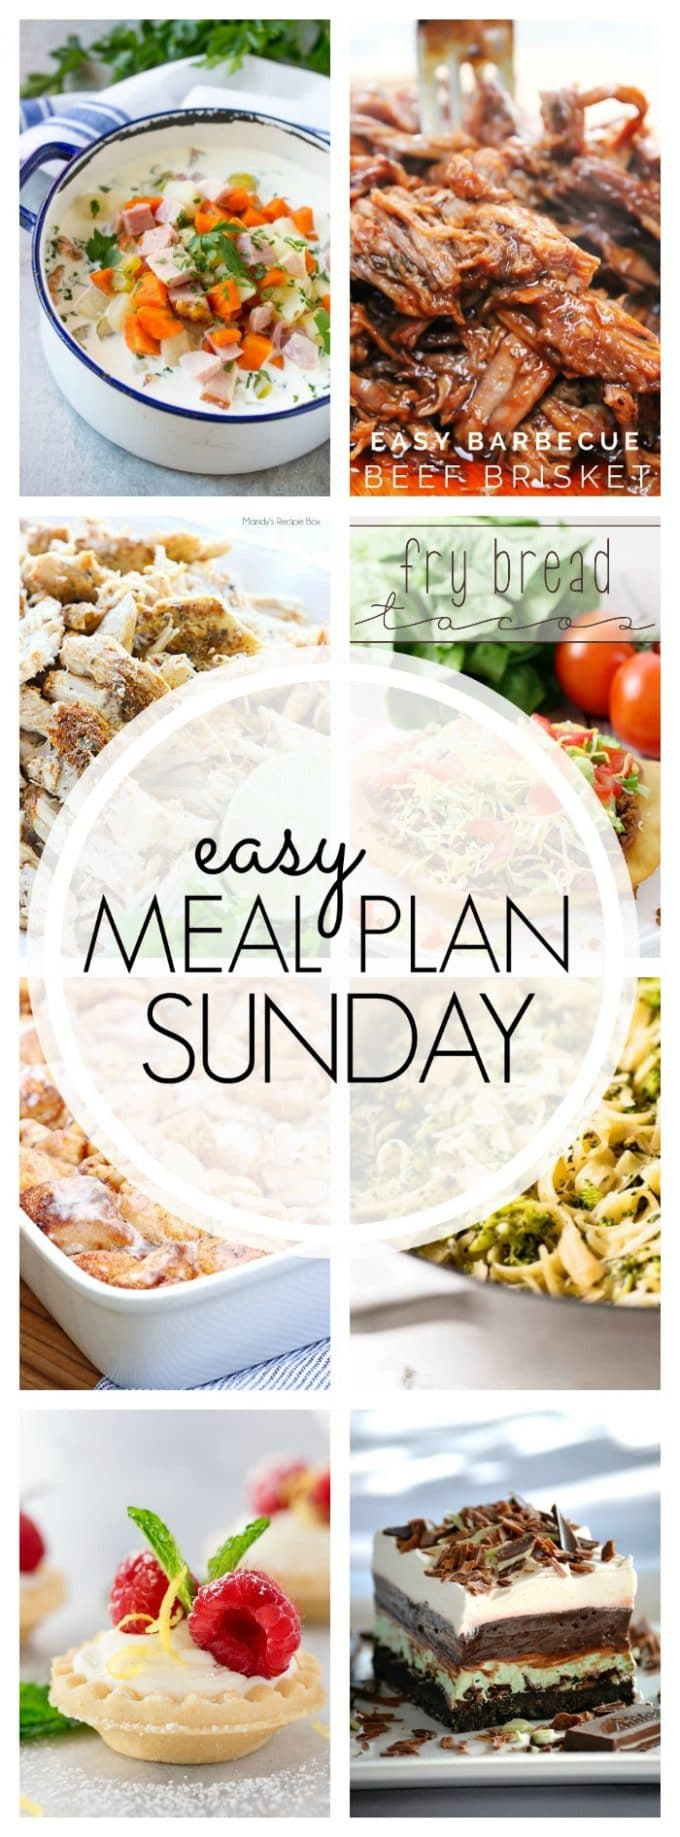 Easy Meal Plan Sunday - Week 89